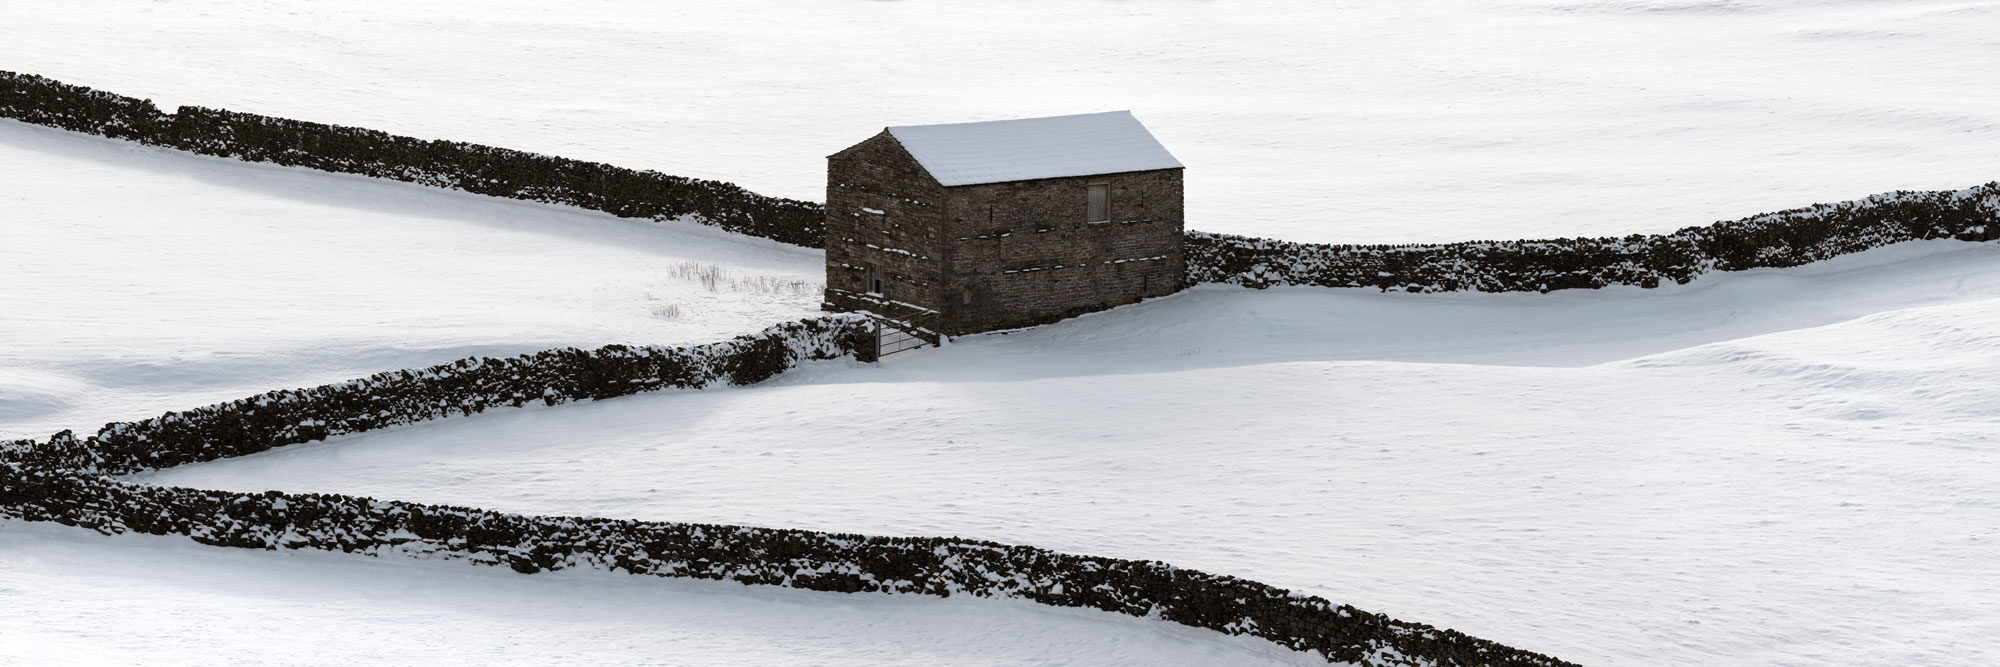 Yorkshire Dales barn covered in snow panoramic